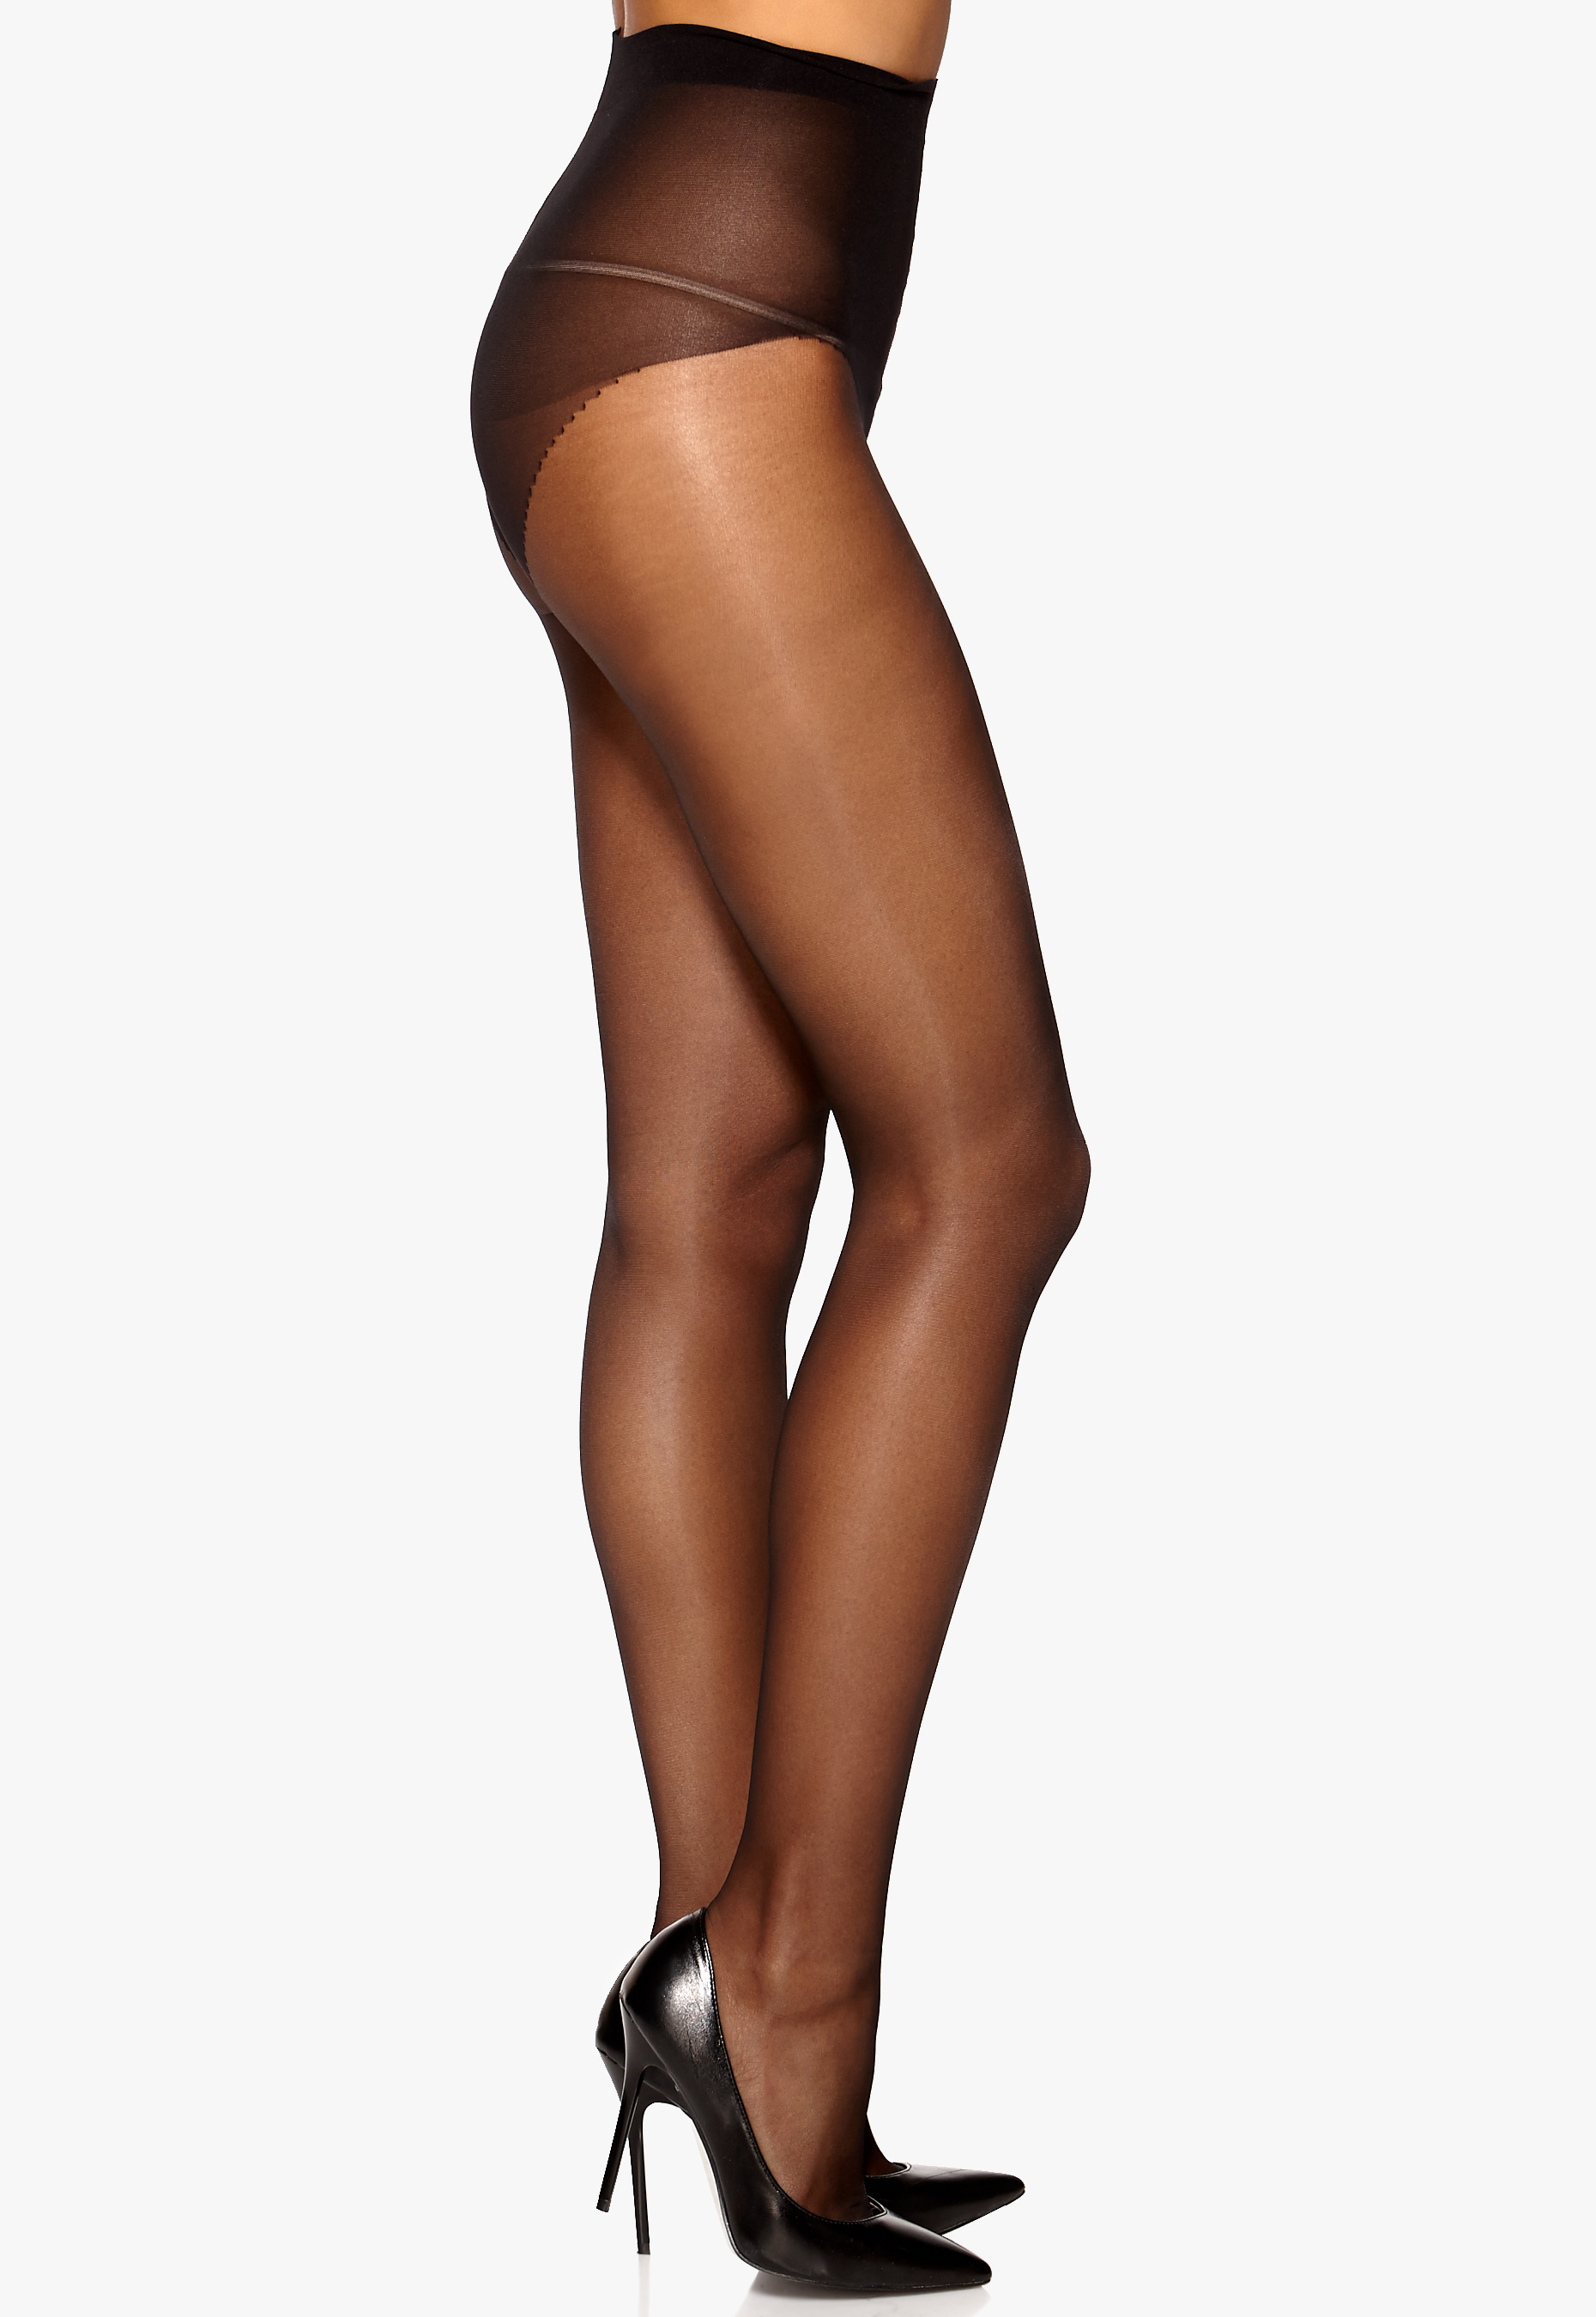 Pantyhose Filodoro: reviews about quality